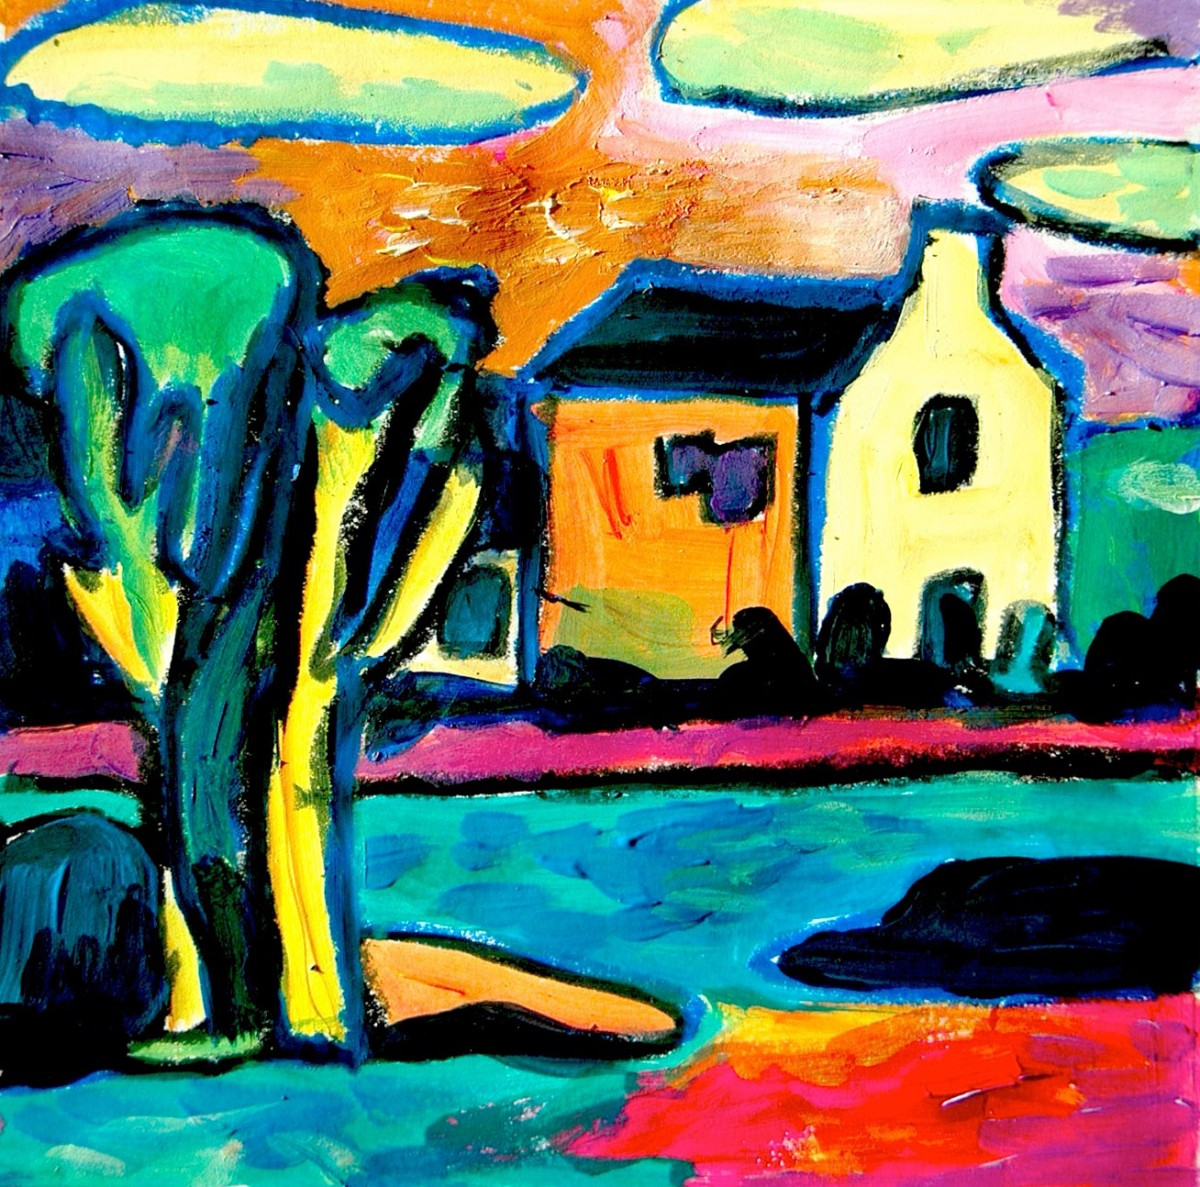 Inspired by the Kandinsky's landscapes